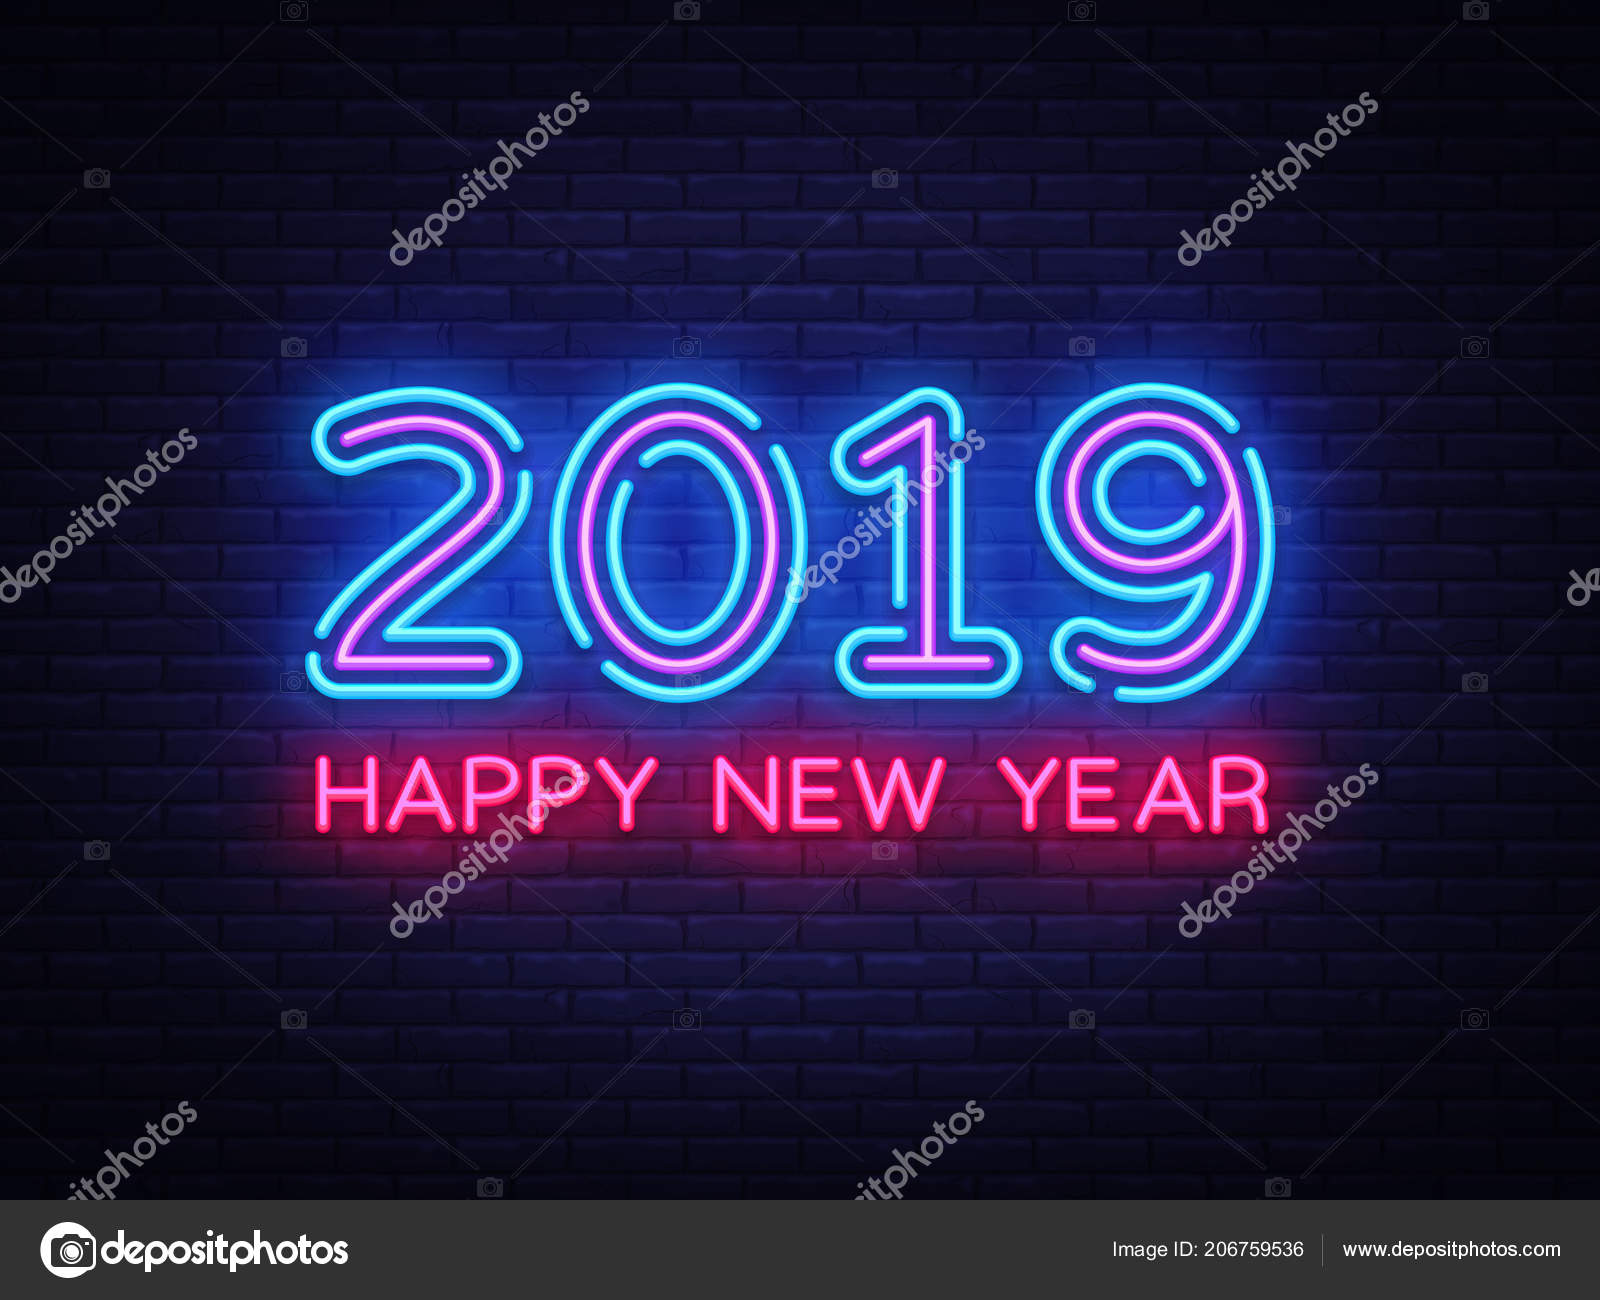 2019 Happy New Year Neon Text  2019 New Year Design template for     2019 Happy New Year Neon Text  2019 New Year Design template for Seasonal  Flyers and